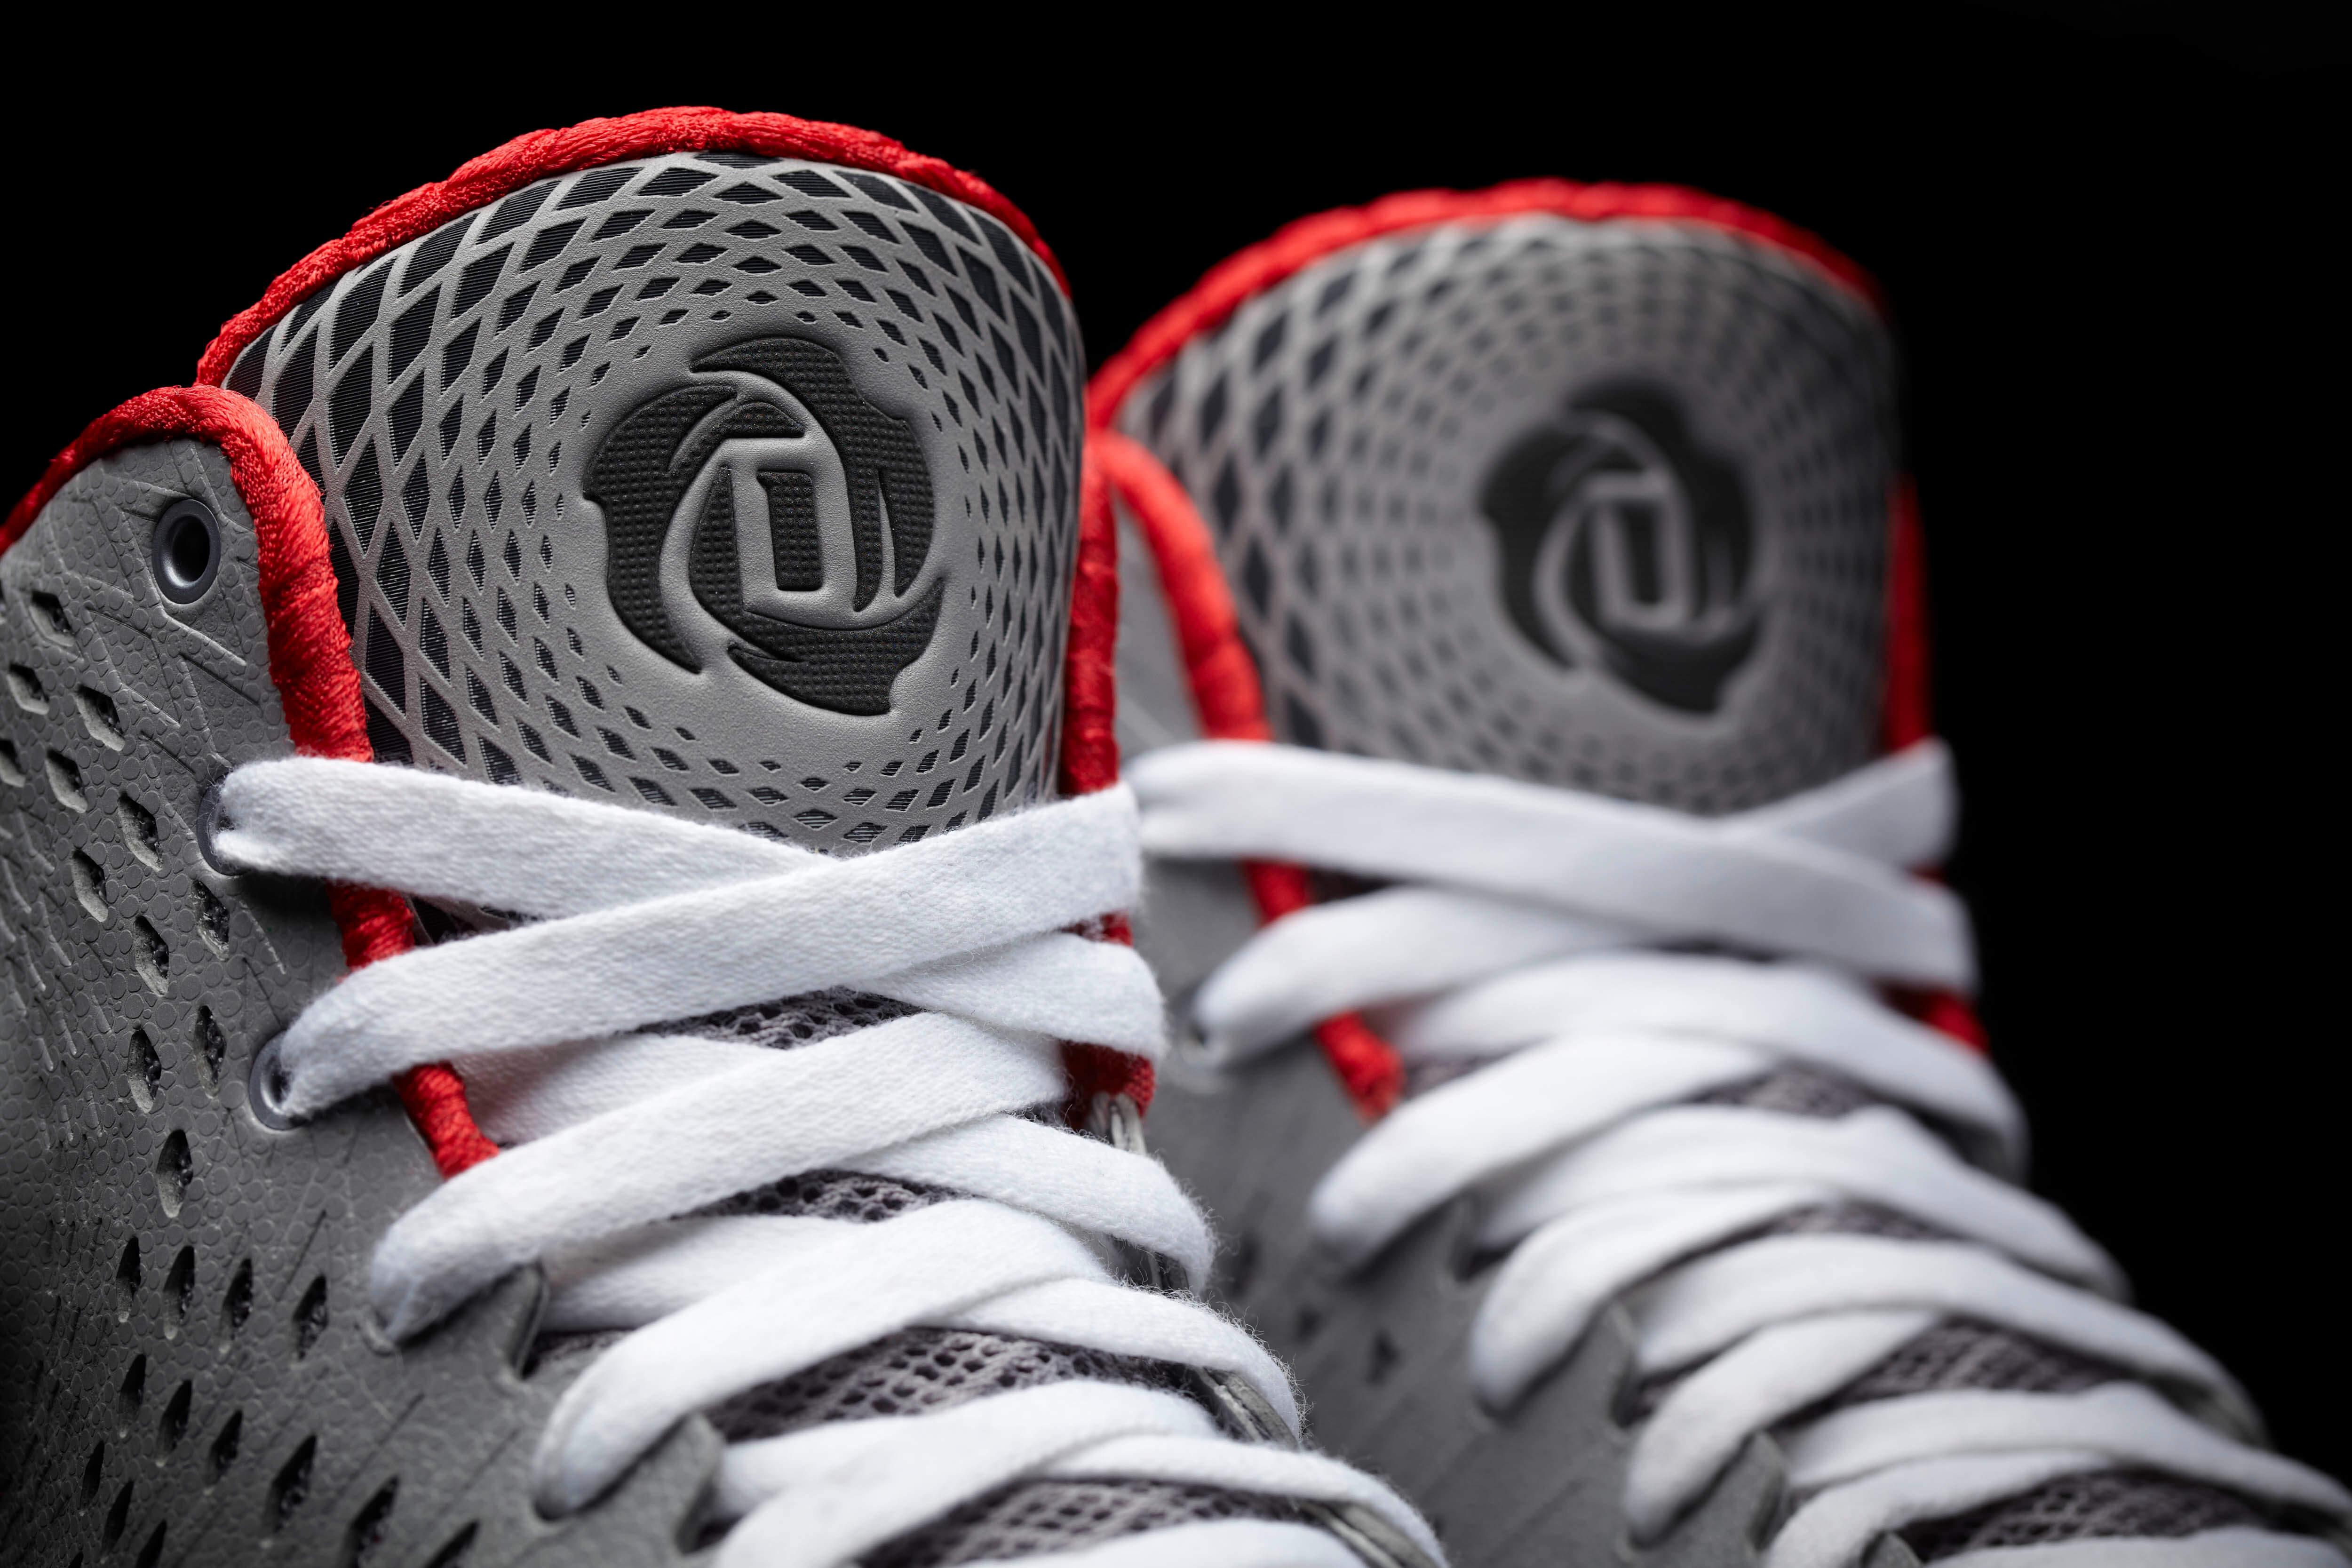 54bcbfad3085 Adidas And Derrick Rose Unveil The D Rose 3.5  The Return Is Near ...